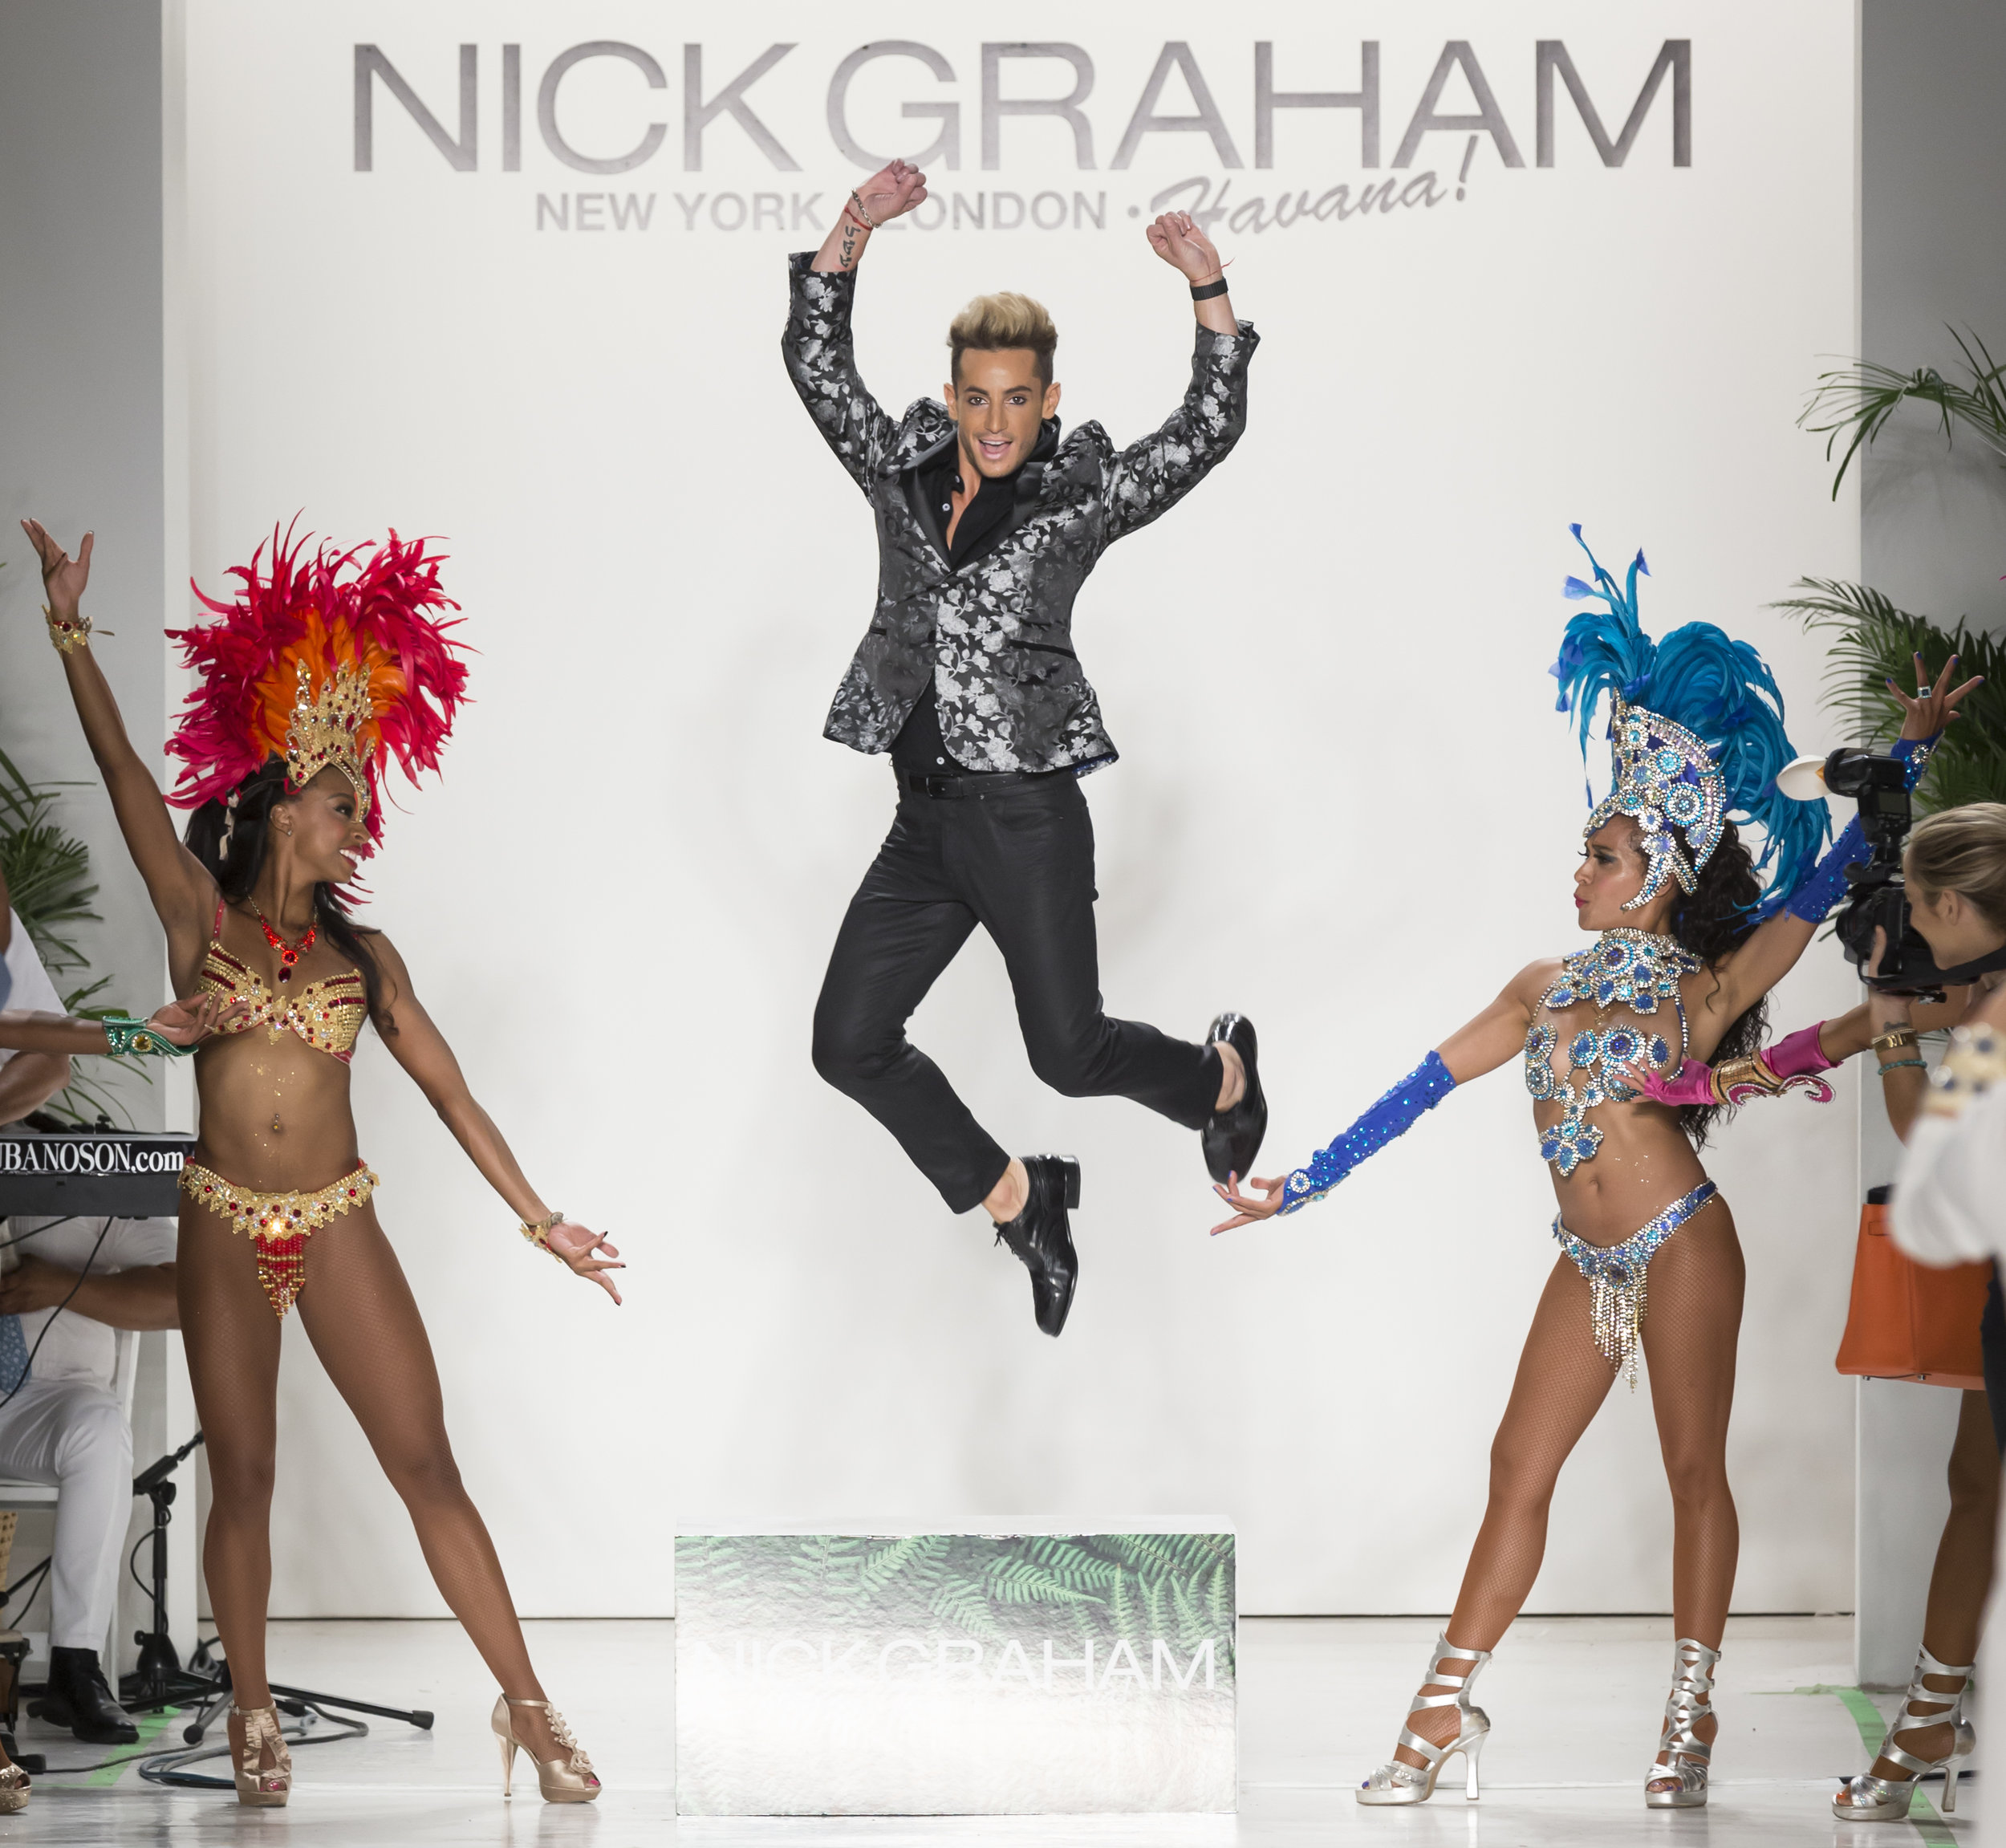 Jump for Pure Joy - Ok! Caught in a flash by some of the top fashion photogs in the world. I think Arianna Grande is proud of her brother here. PURE SAMBA - dancing and spreading joy for New York Fashion Week Mens for Nick Graham.